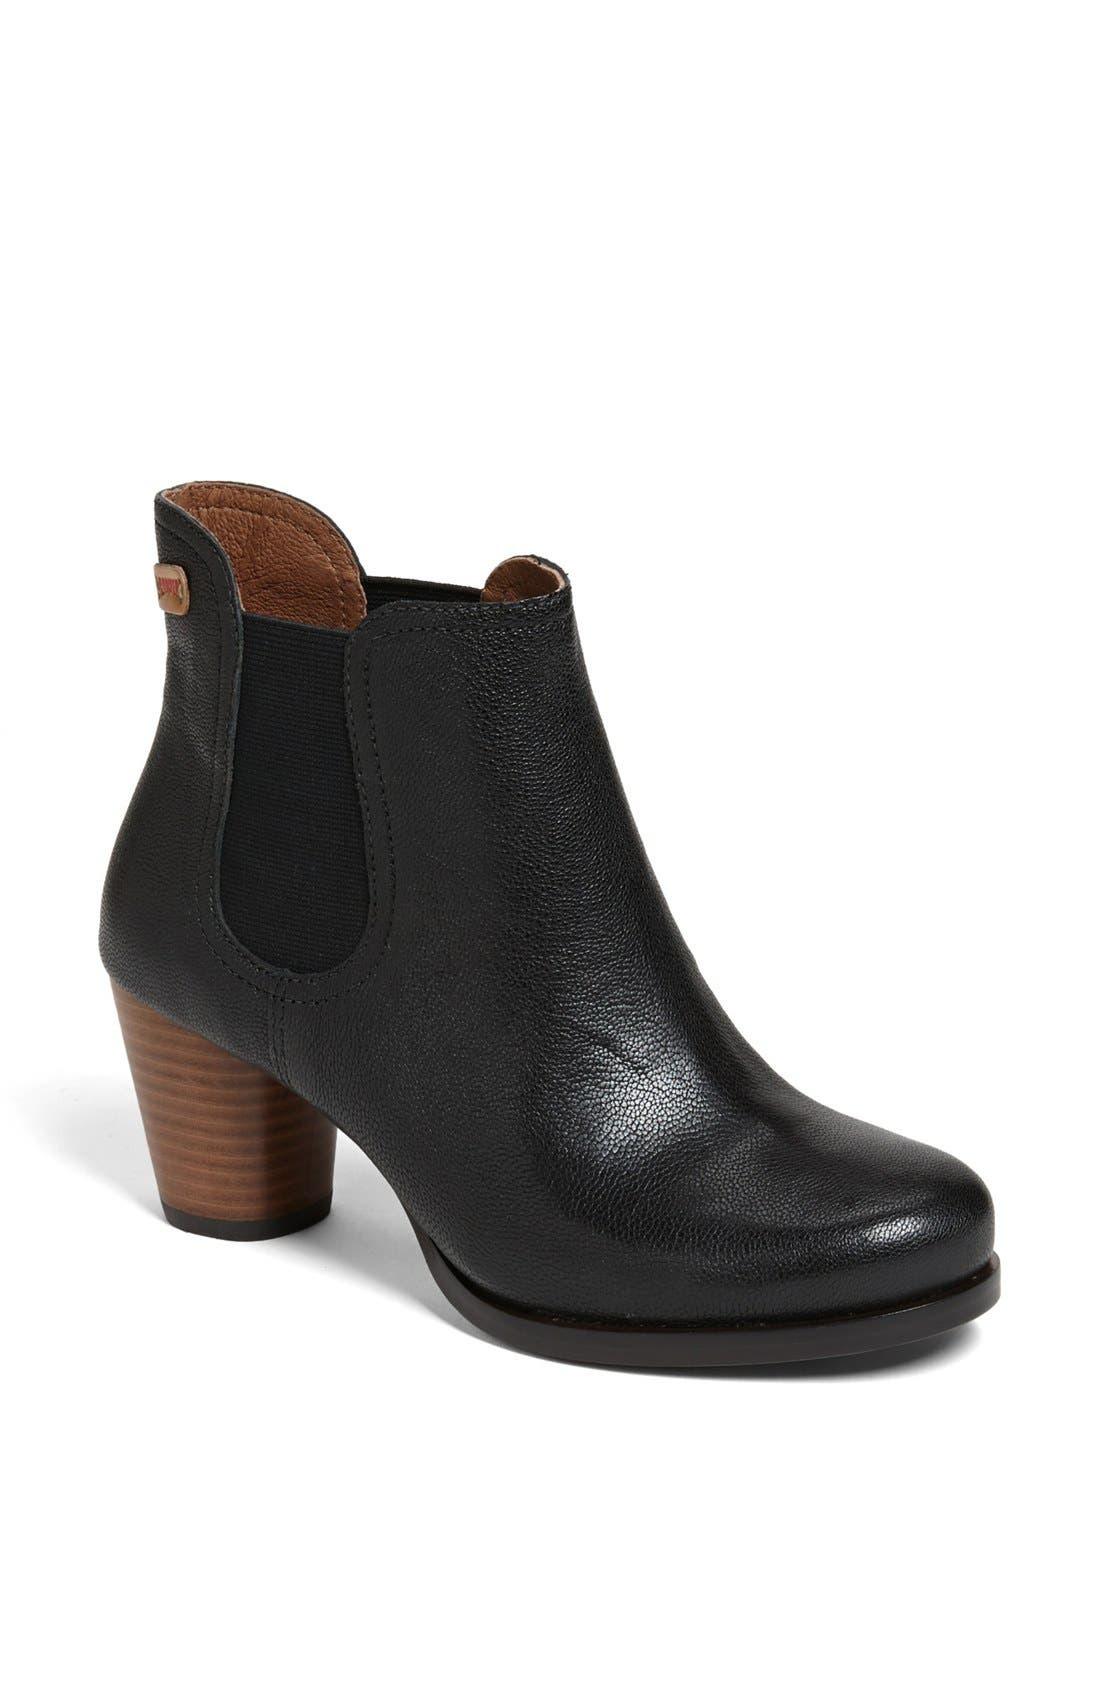 Main Image - Camper 'Annie' Ankle Boot